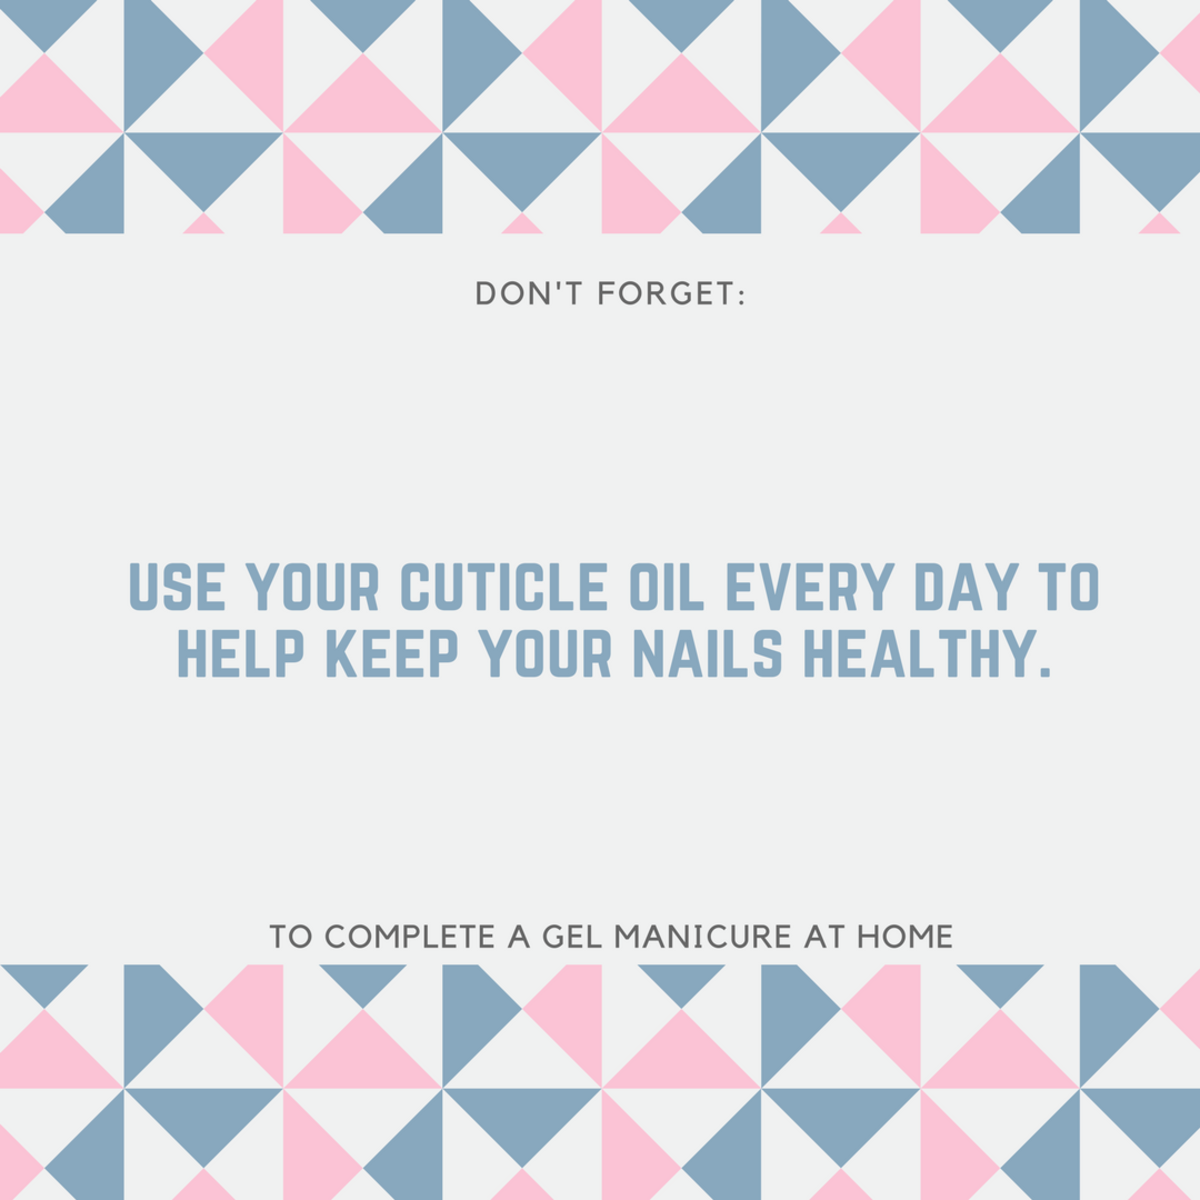 Use your cuticle oil daily for healthy nails, after your gel manicure at home.